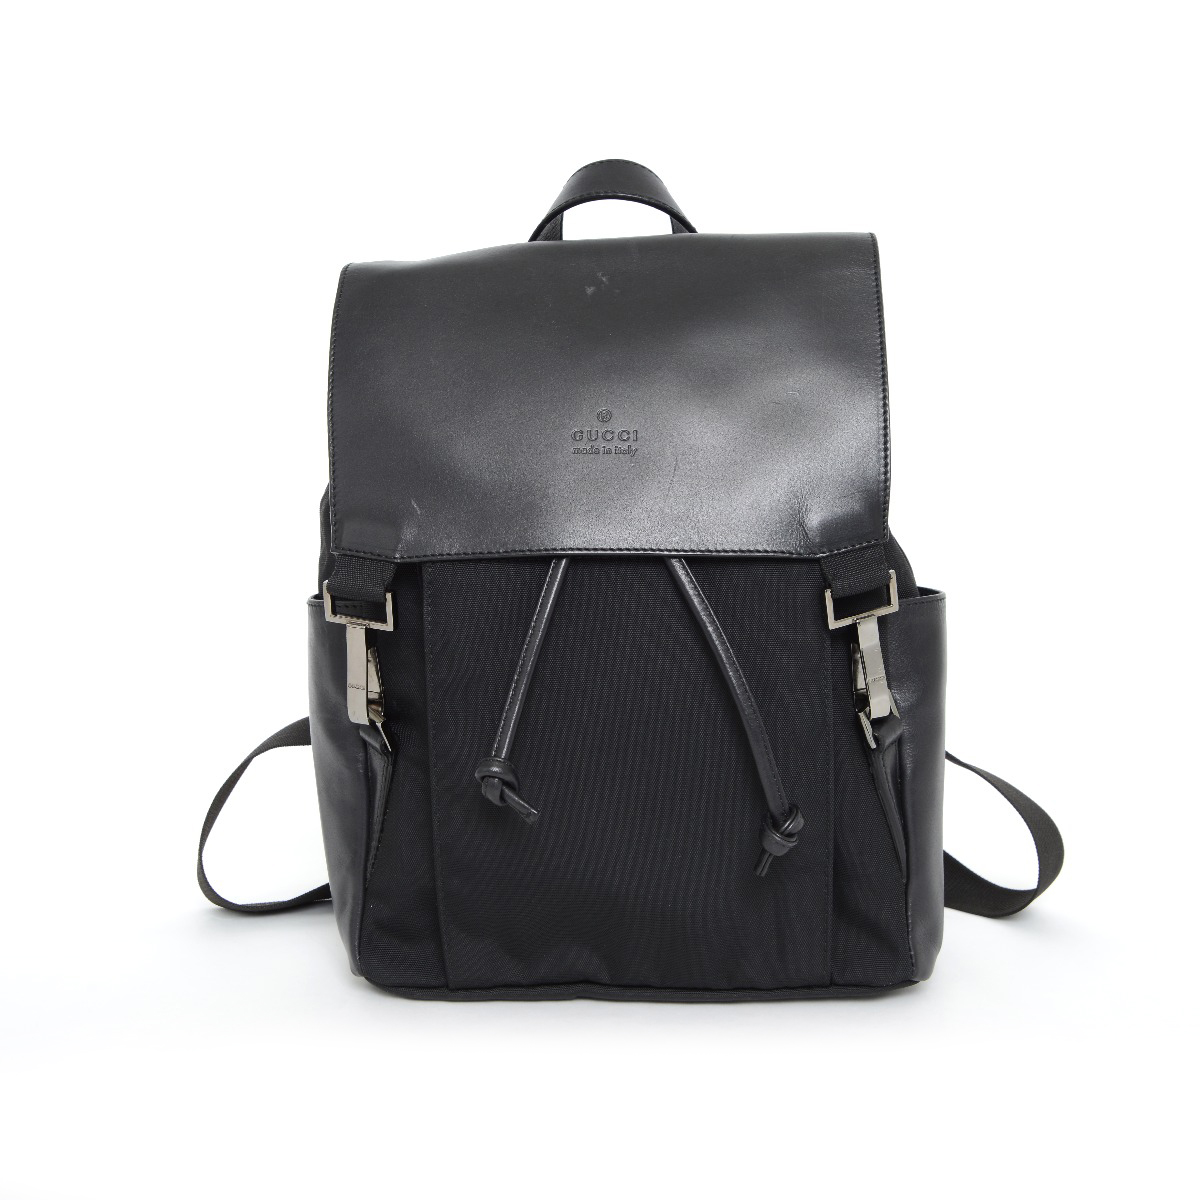 7333a7d349f886 GUCCI 【Gucci】 Backpack · Daypack Nylon / Leather Women ー The ...